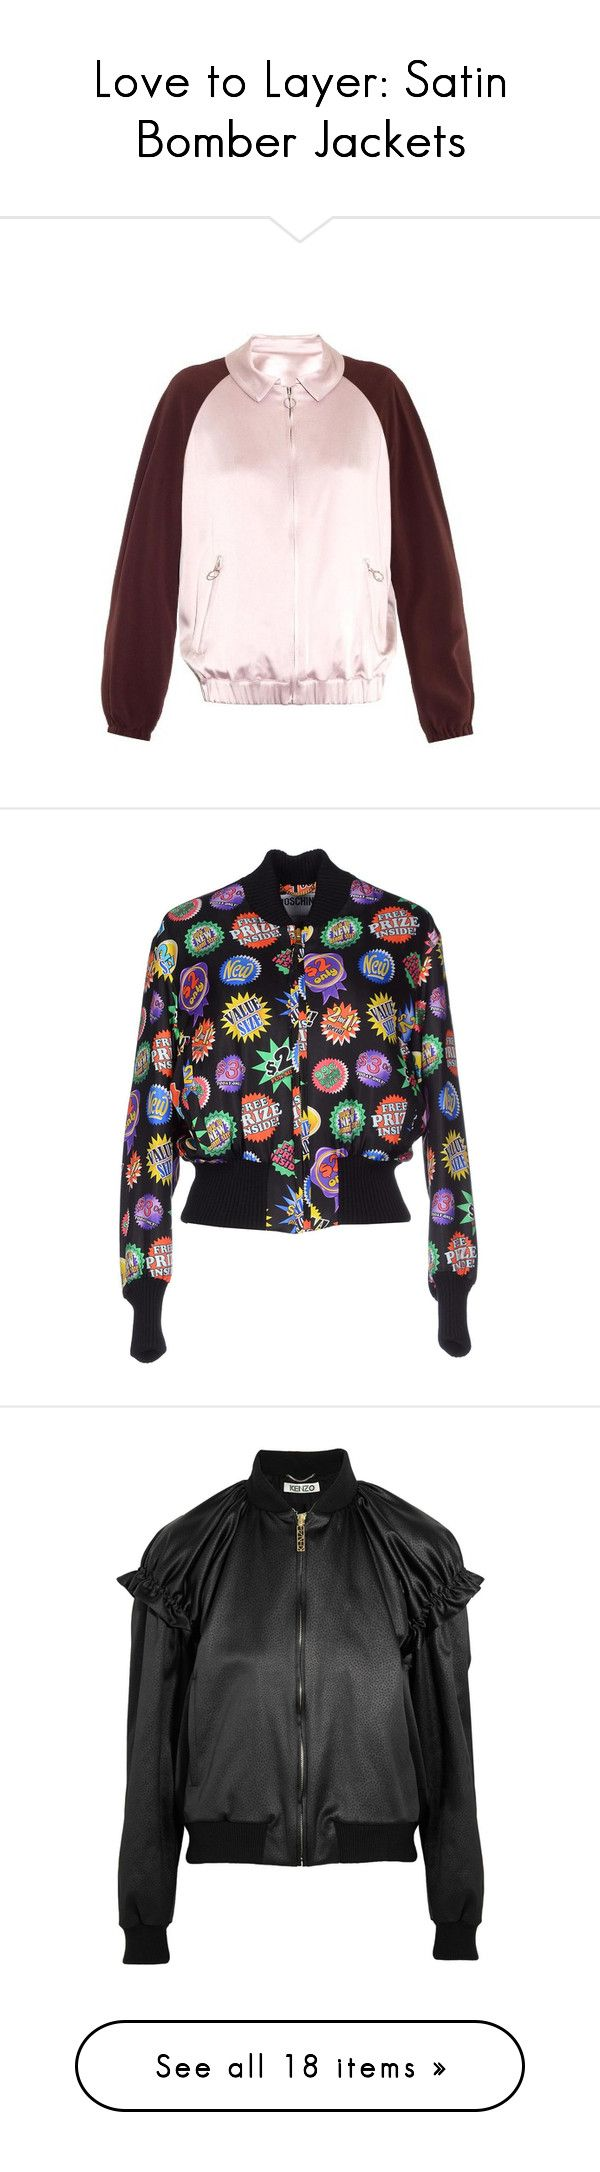 """""""Love to Layer: Satin Bomber Jackets"""" by polyvore-editorial ❤ liked on Polyvore featuring satinbomberjacket, outerwear, jackets, light pink, pink satin jacket, light pink jacket, satin jacket, boyfriend jacket, satin slip and black"""